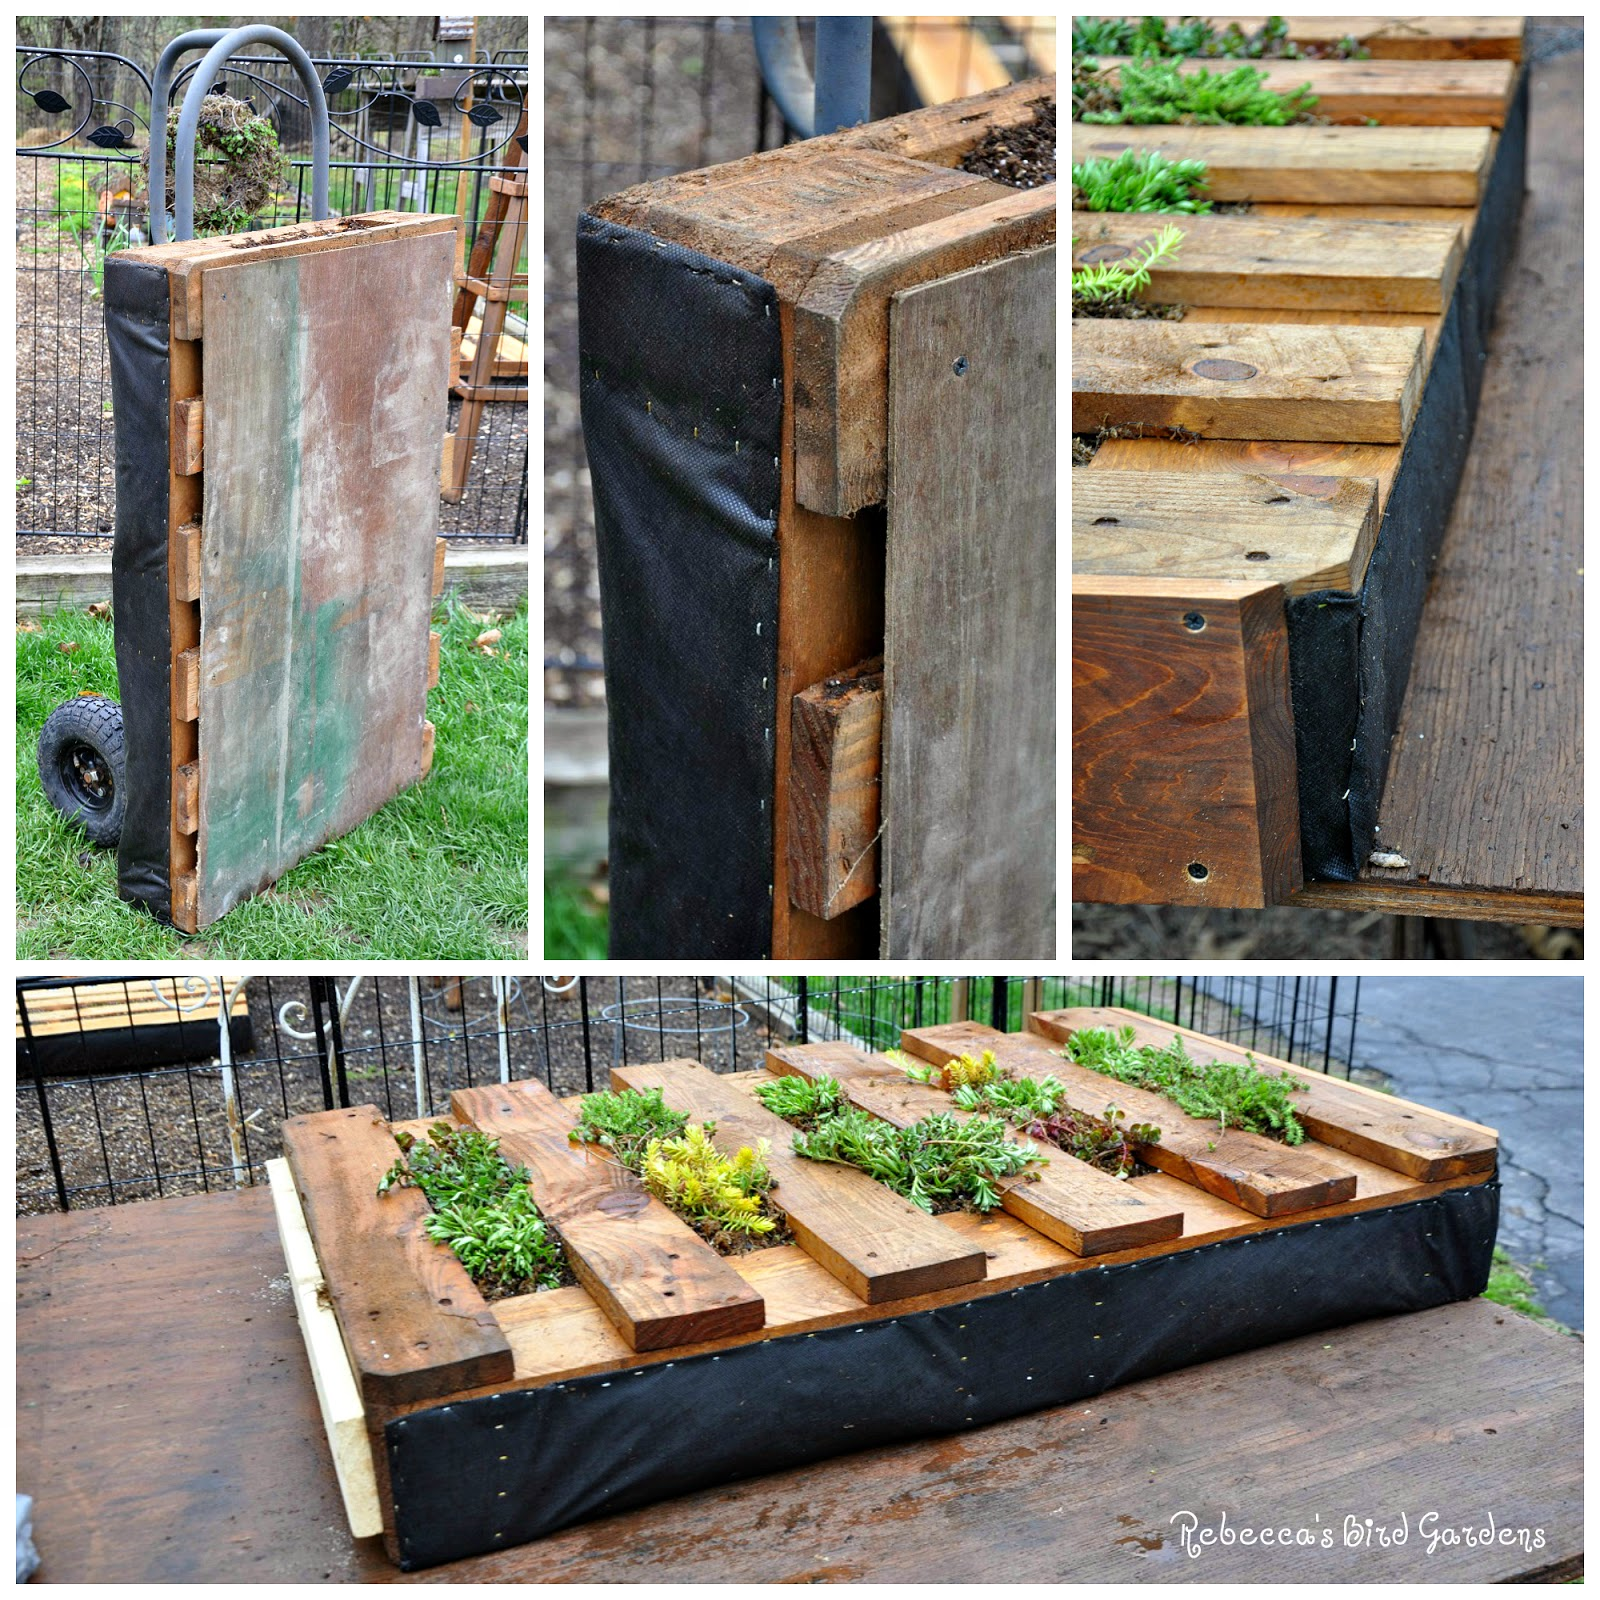 After I Planted The Sedums, I Kept The Pallet Horizontal For 2 Weeks To  Allow The Roots To Become Established. Once The Pallet Was Vertical, I  Removed The ...